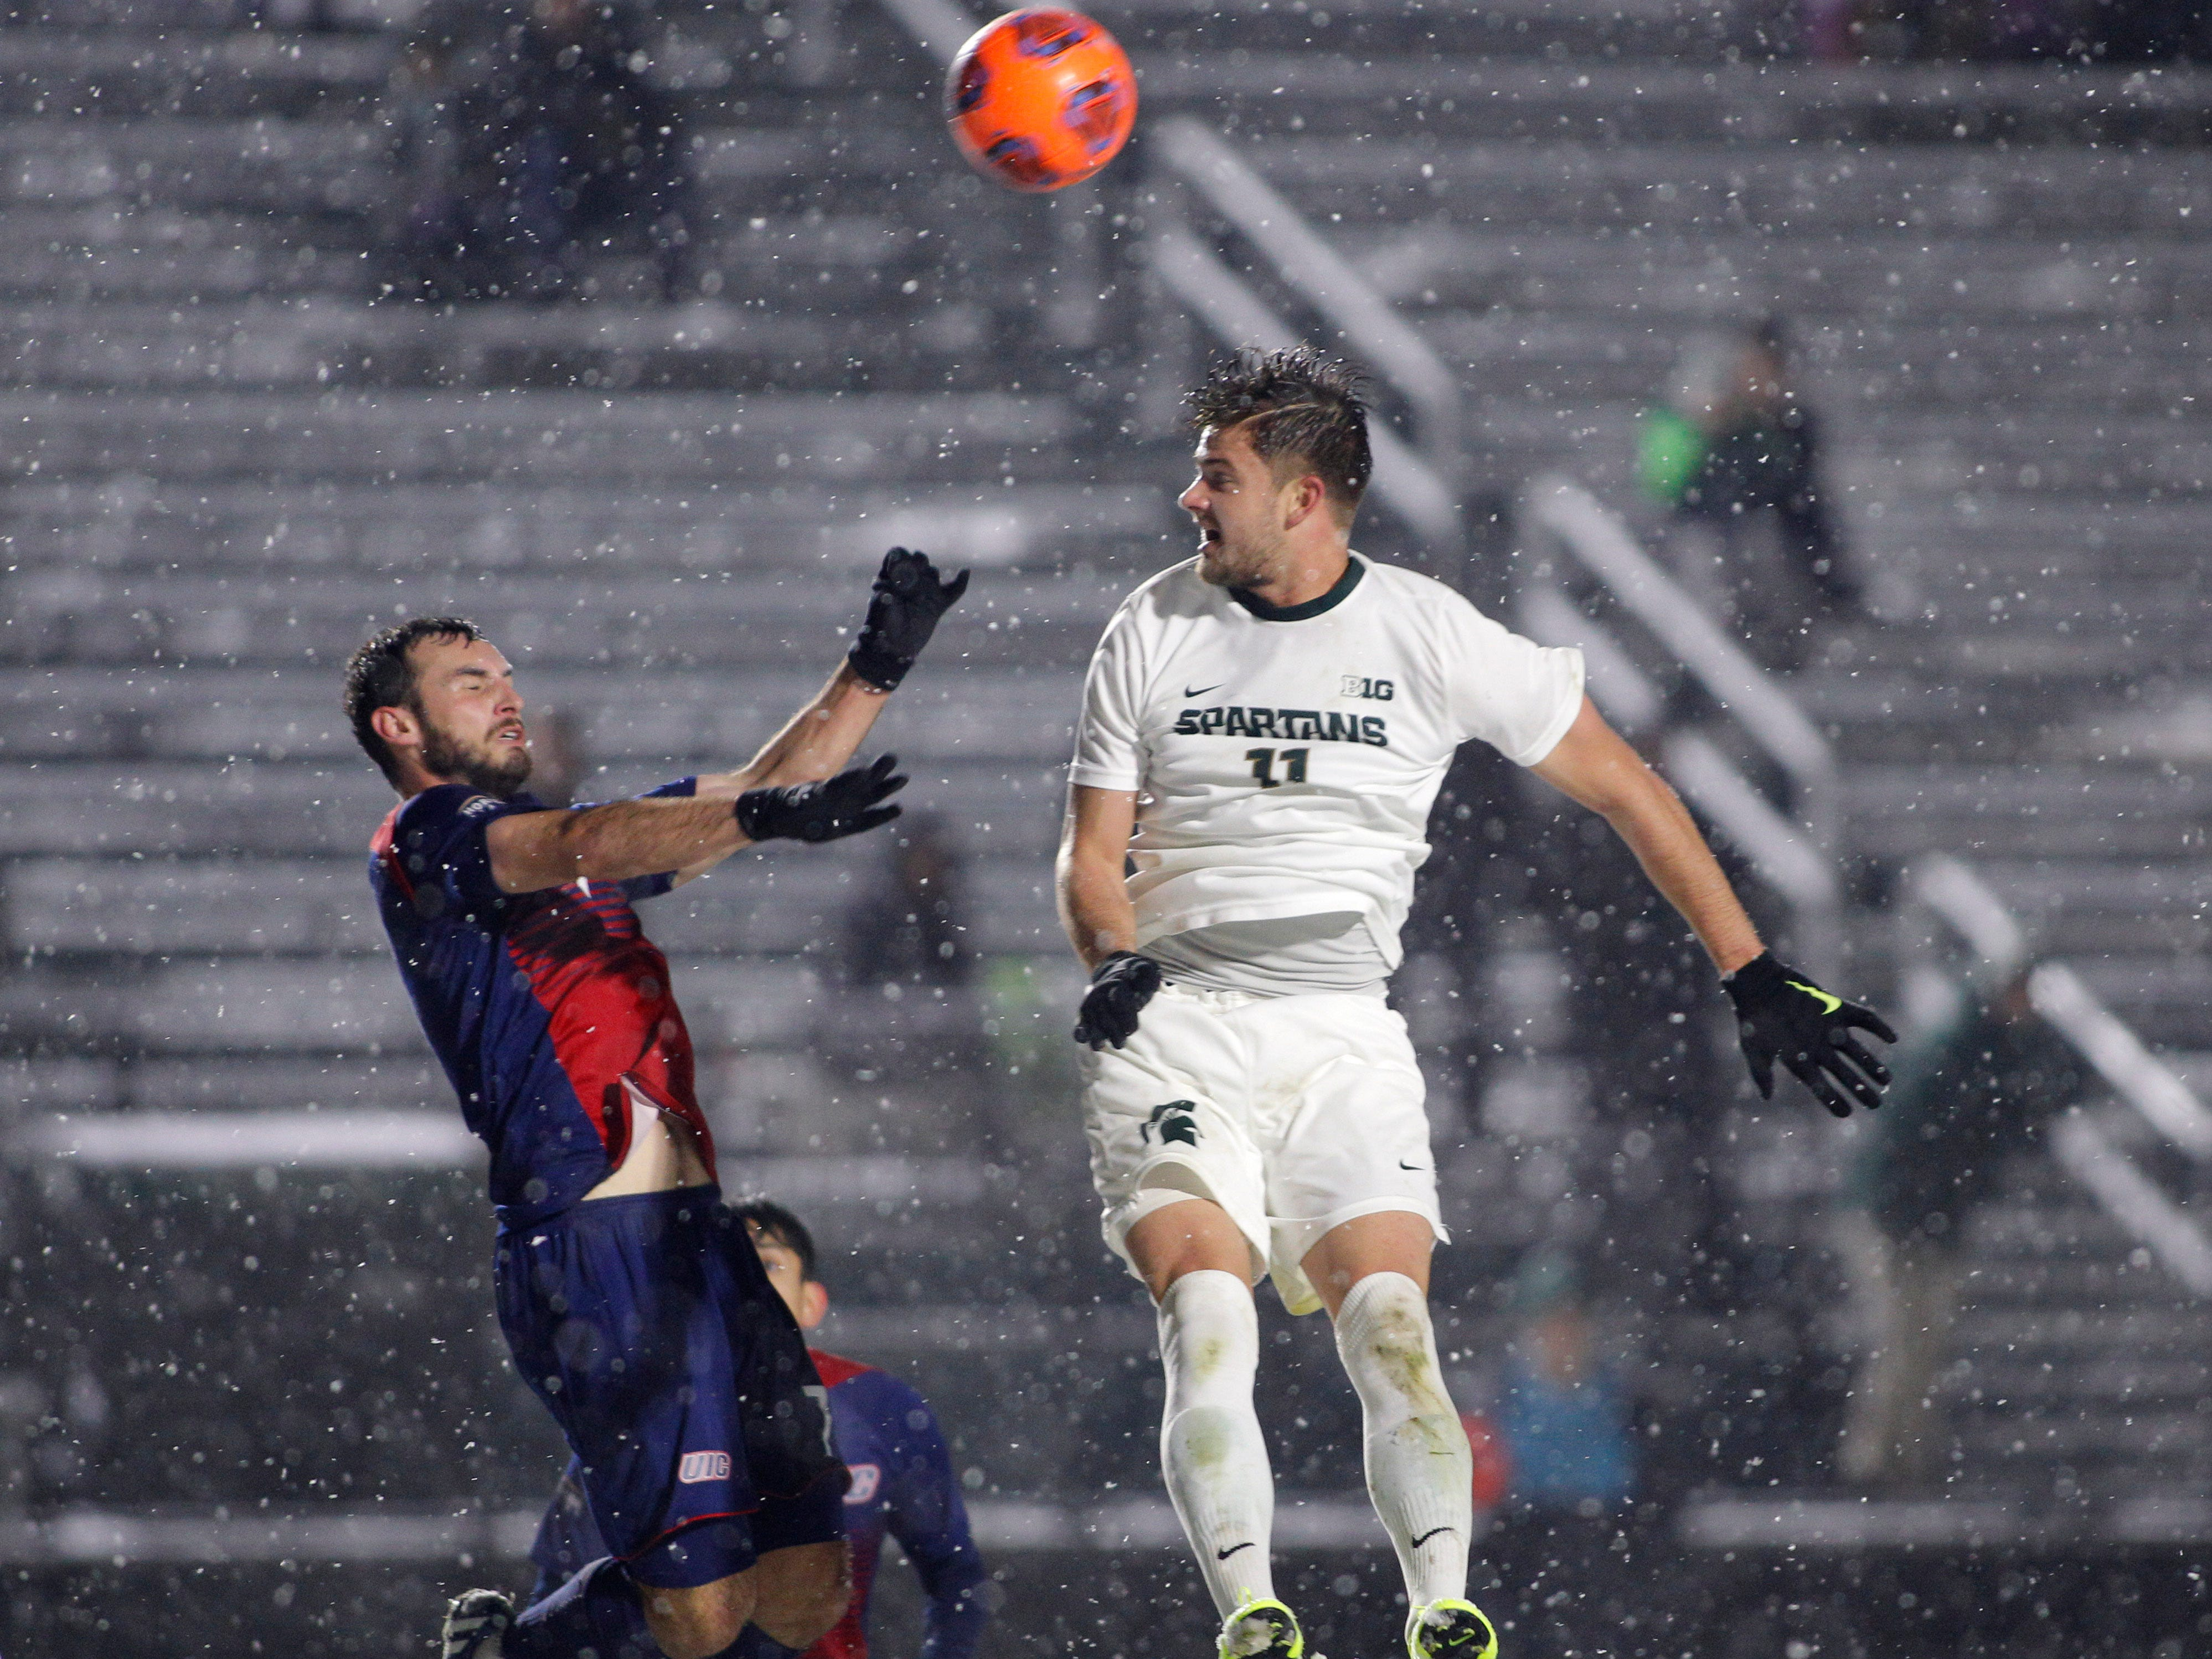 Michigan State's Ryan Sierakowski, right, and Illinois-Chicago's Max Todd vie for a header during their NCAA first round game, Thursday, Nov. 15, 2018, at DeMartin Stadium in East Lansing, Mich. MSU won 2-0.